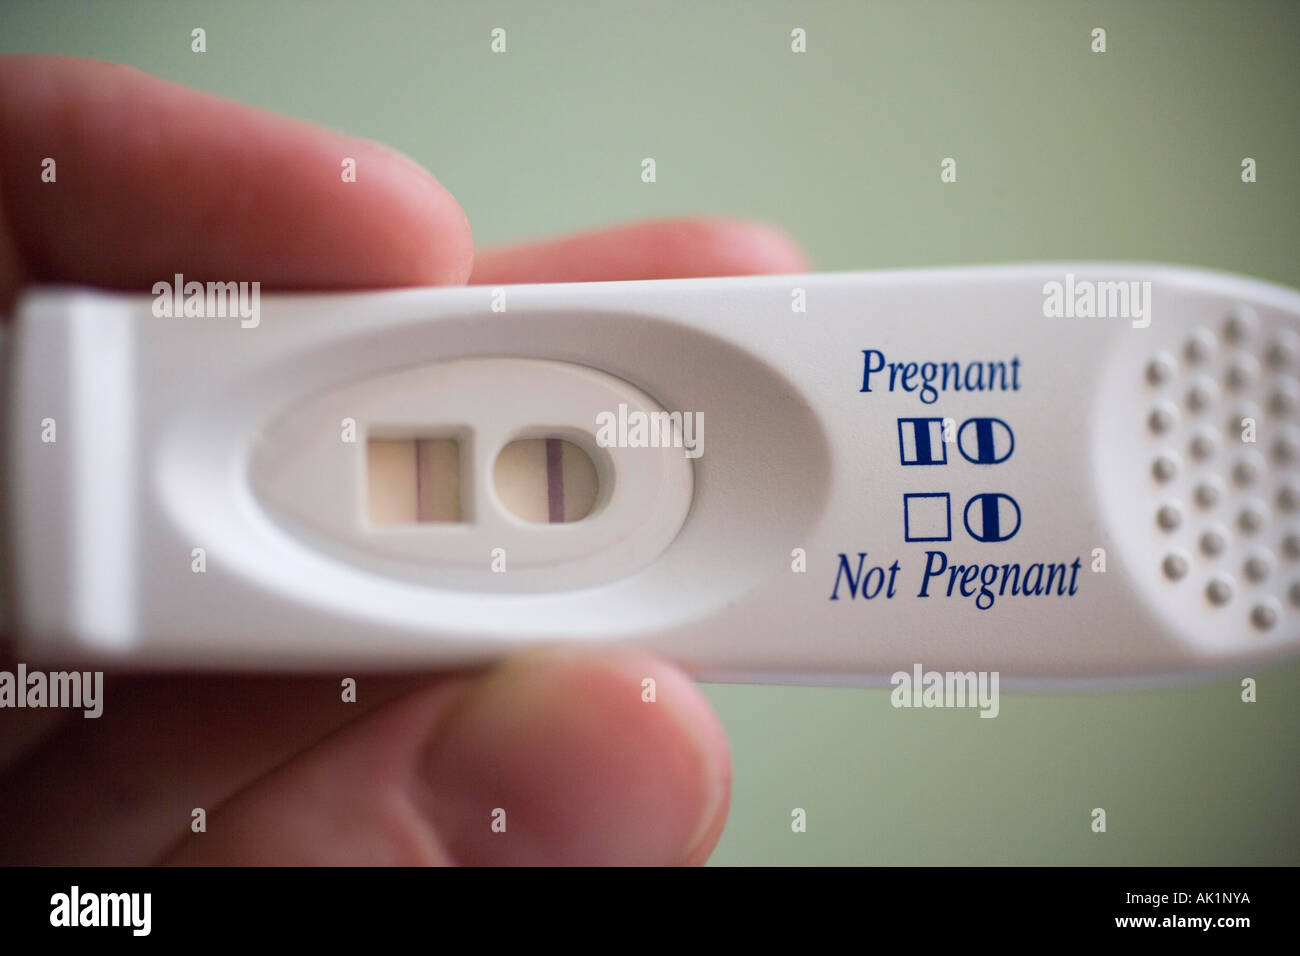 Home Pregnancy Test Positive Results Stock Photo Alamy